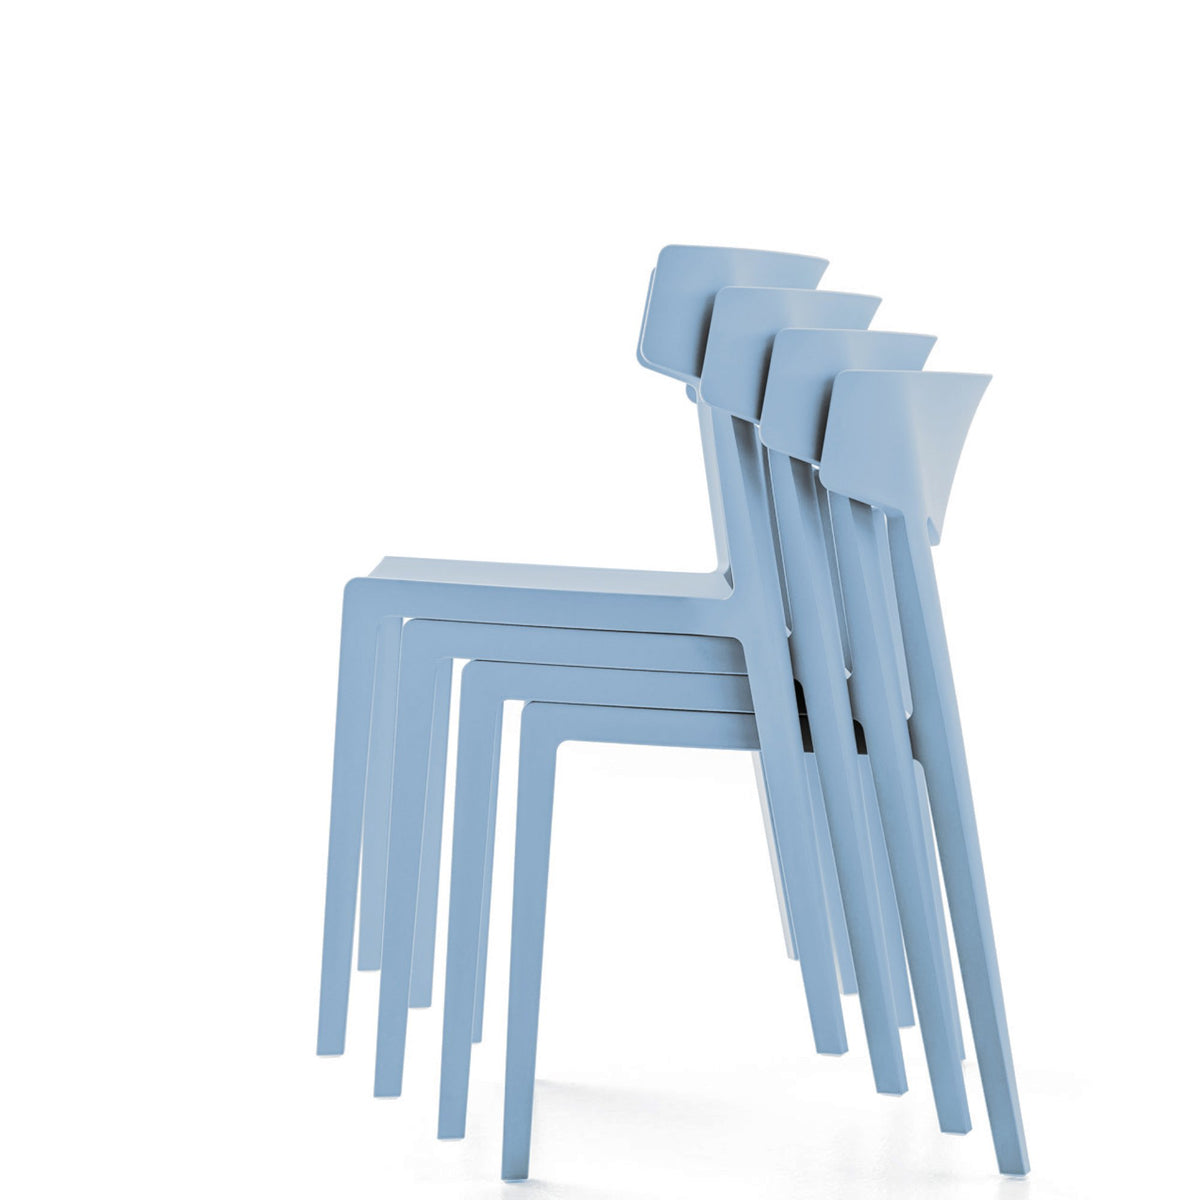 Actiu Office Wing Stackable Chair - Set of Four Light Blue